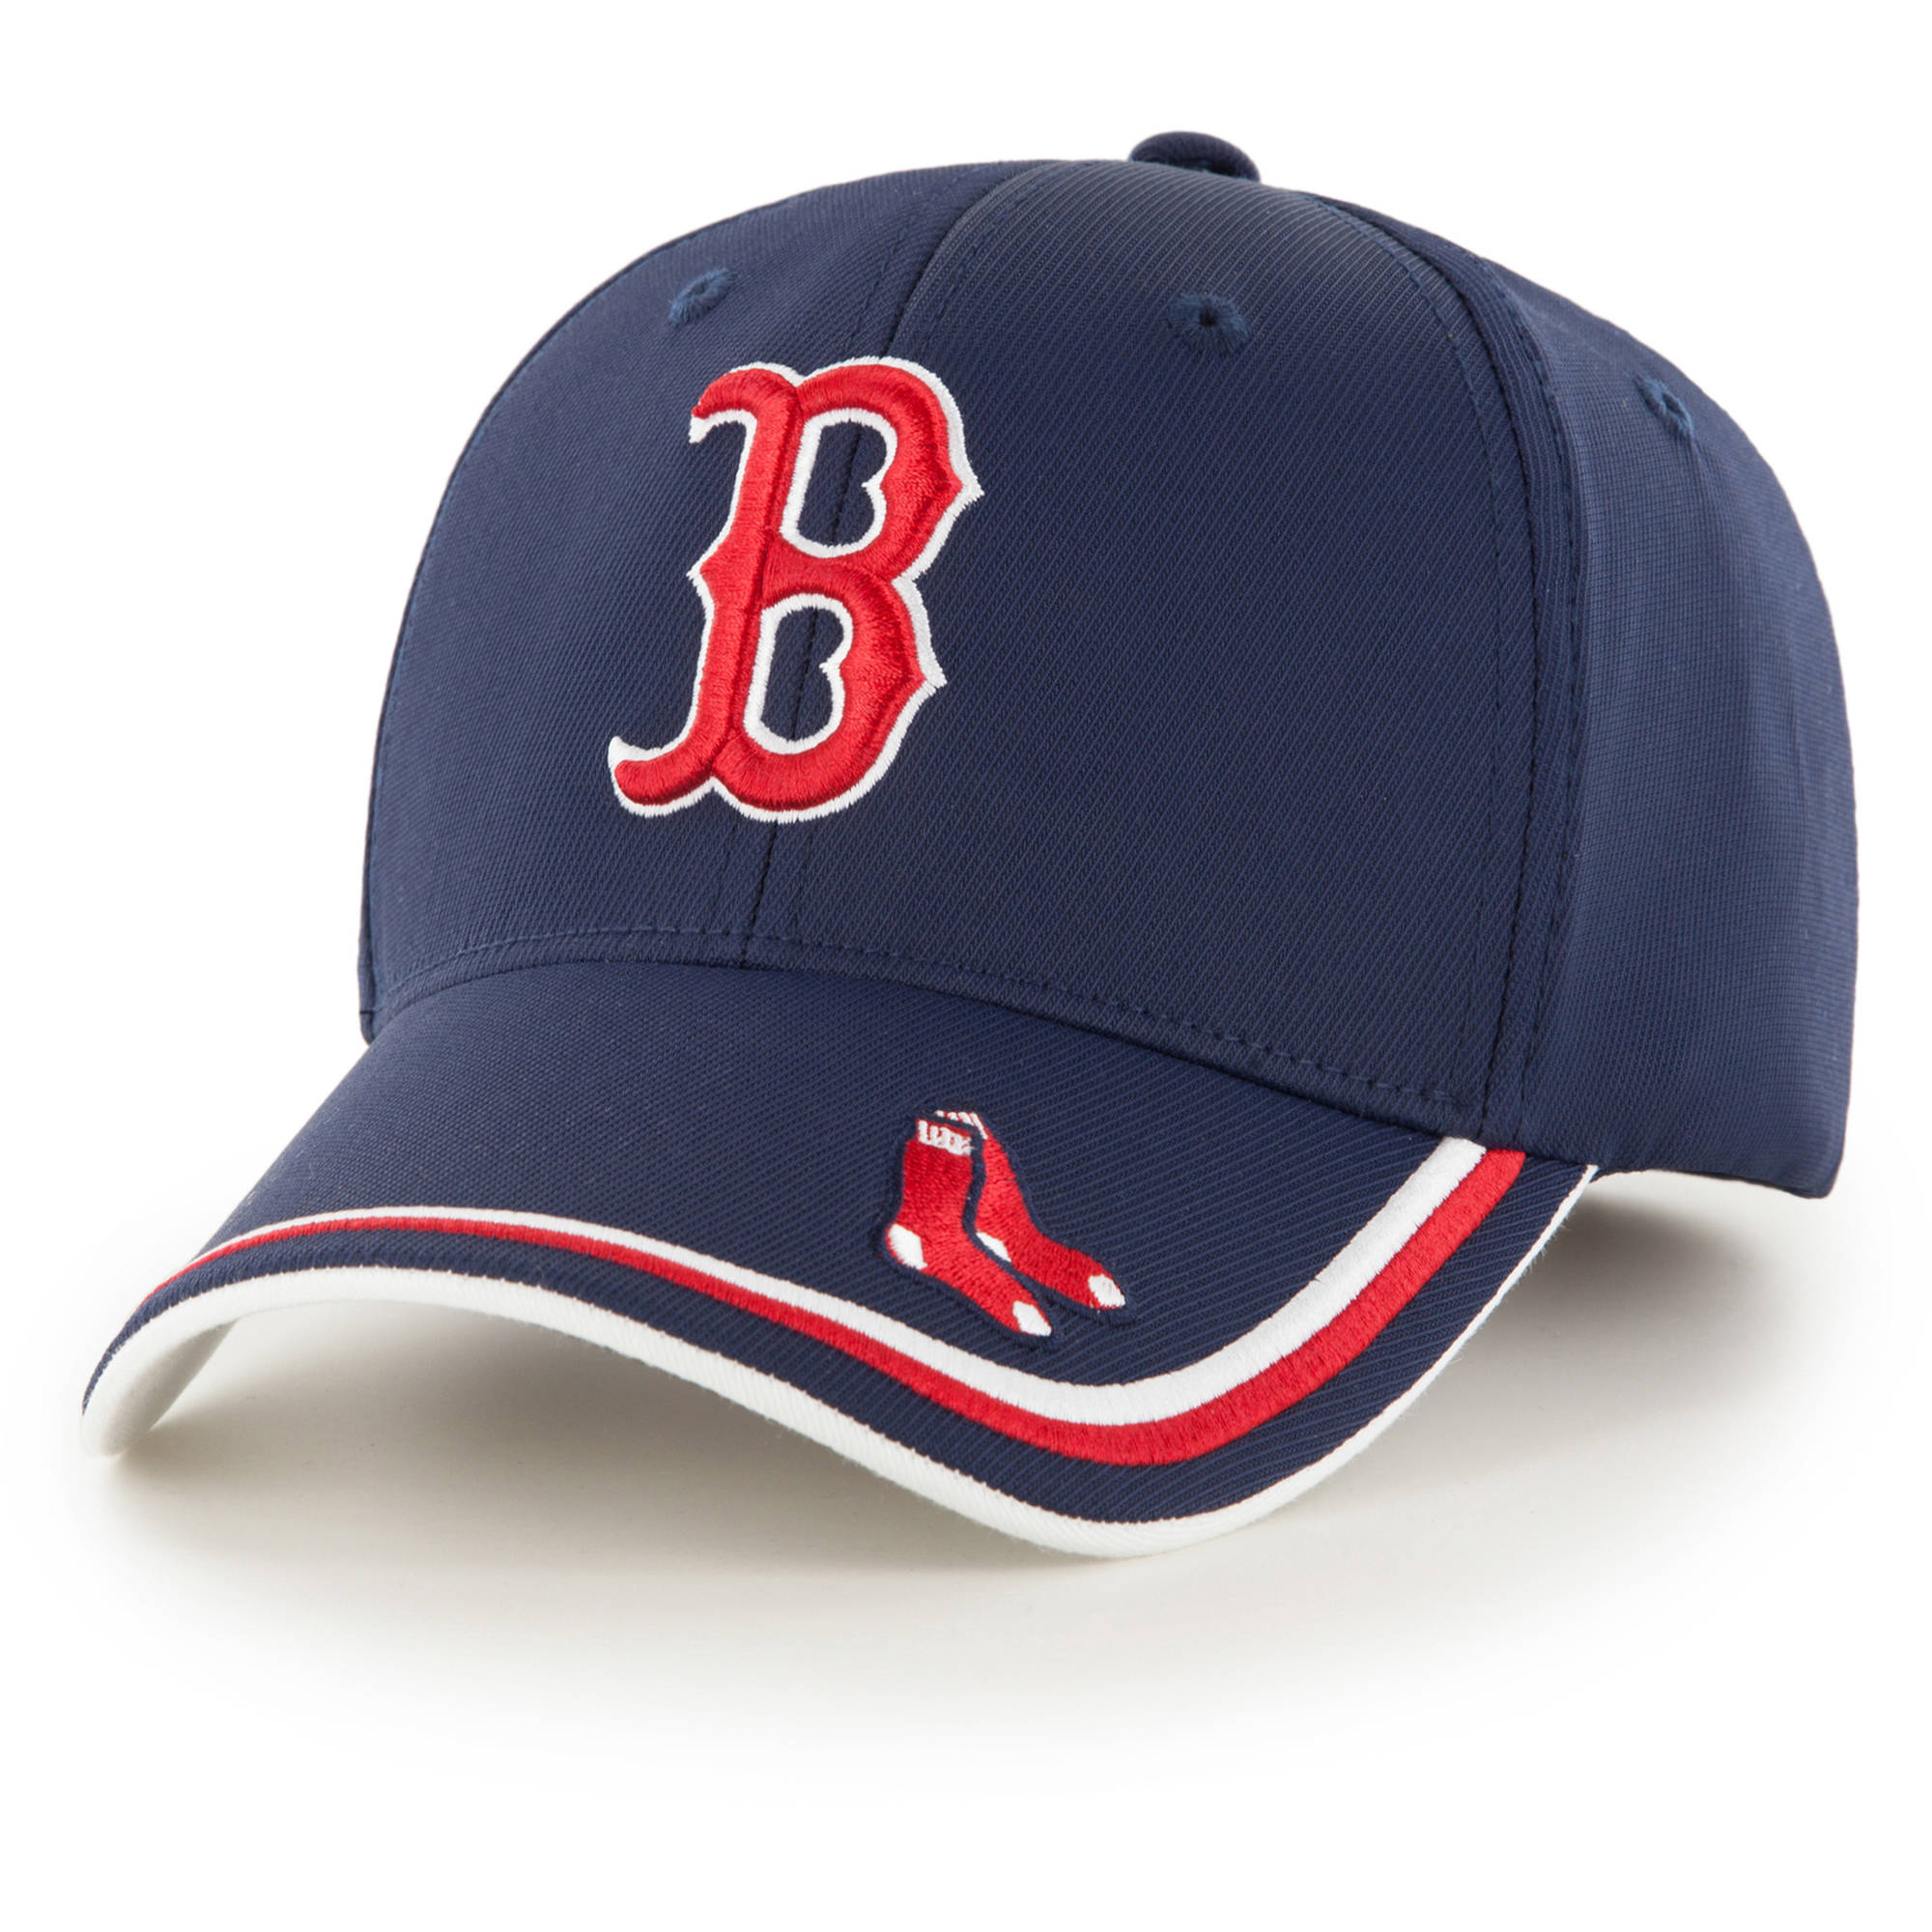 MLB Boston Red Sox Forest Cap / Hat by Fan Favorite